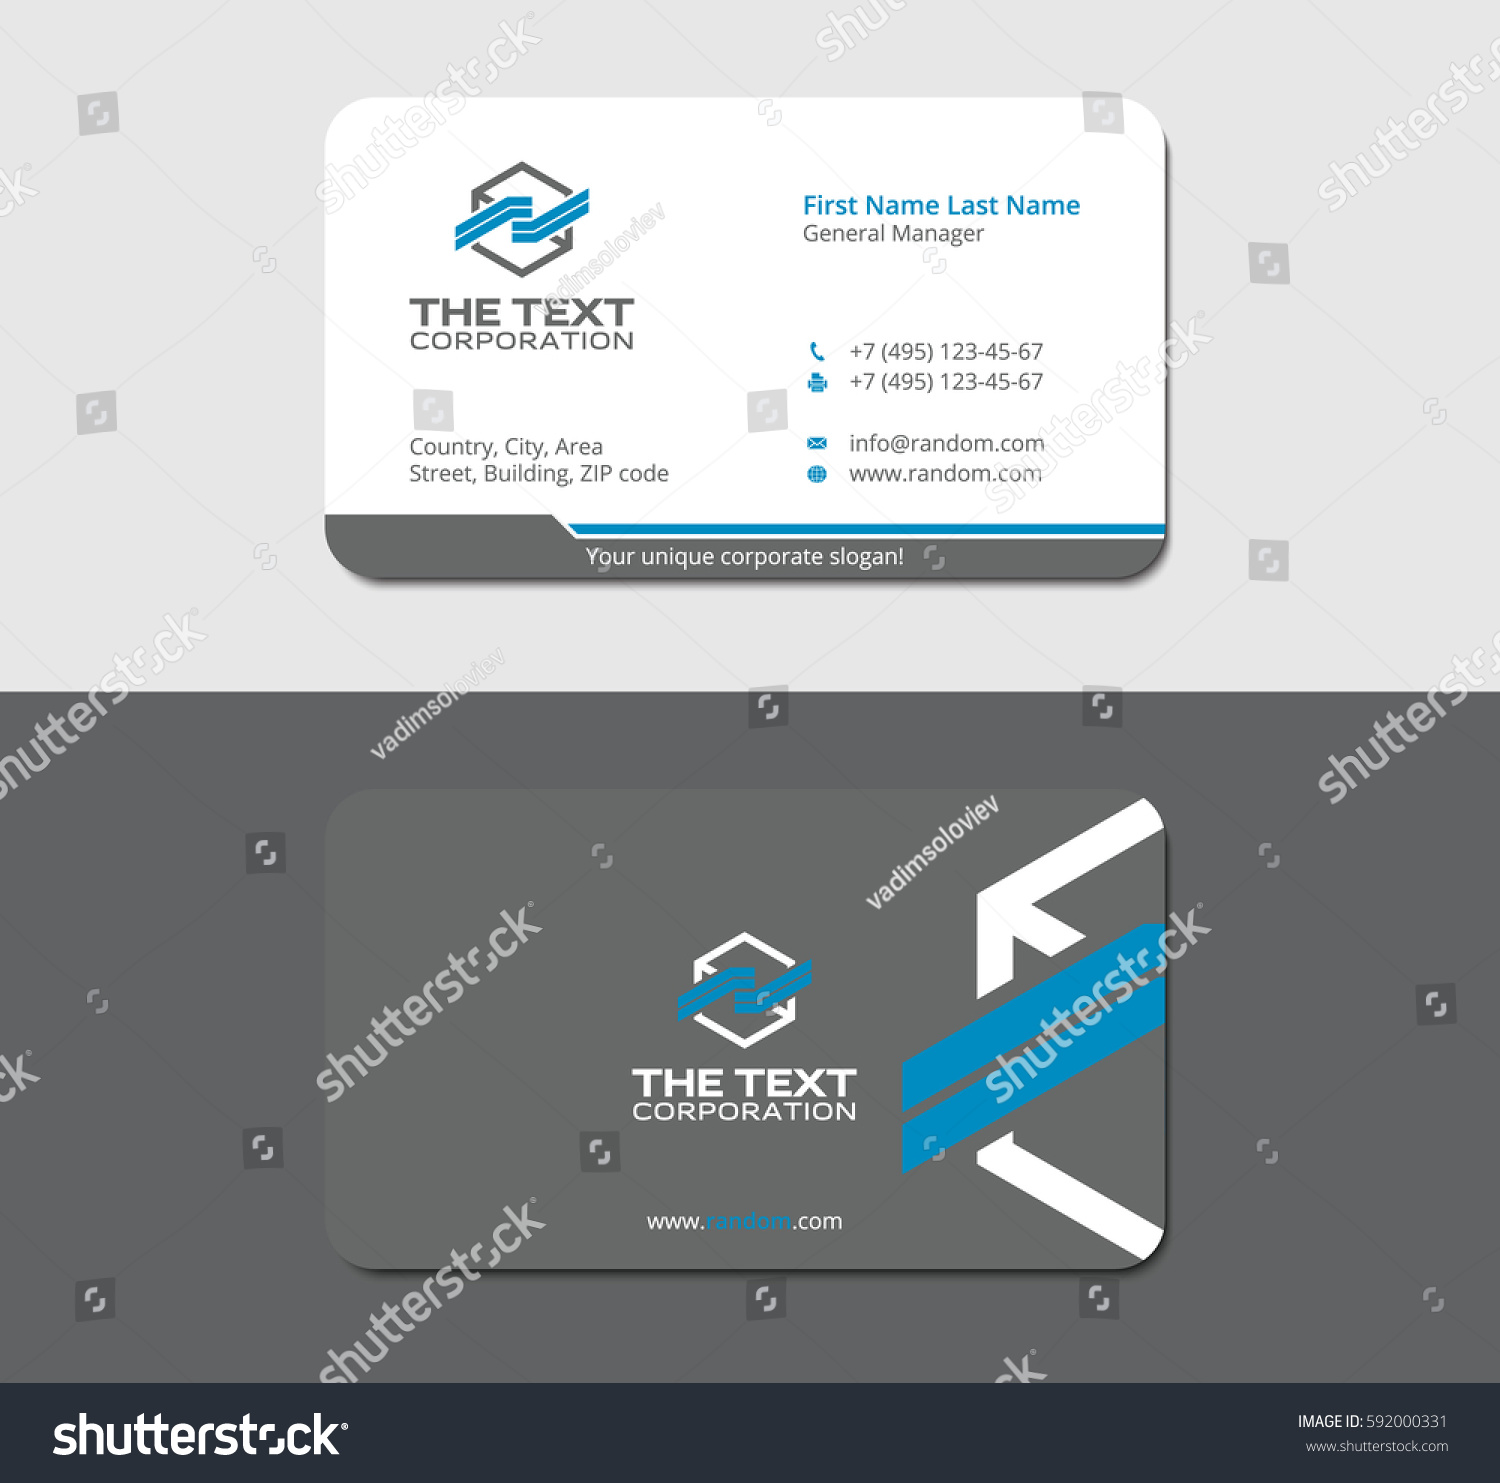 Sleek business cards gallery free business cards gray sleek business card abstract hexagon stock vector 592000331 gray sleek business card with abstract hexagon magicingreecefo Choice Image